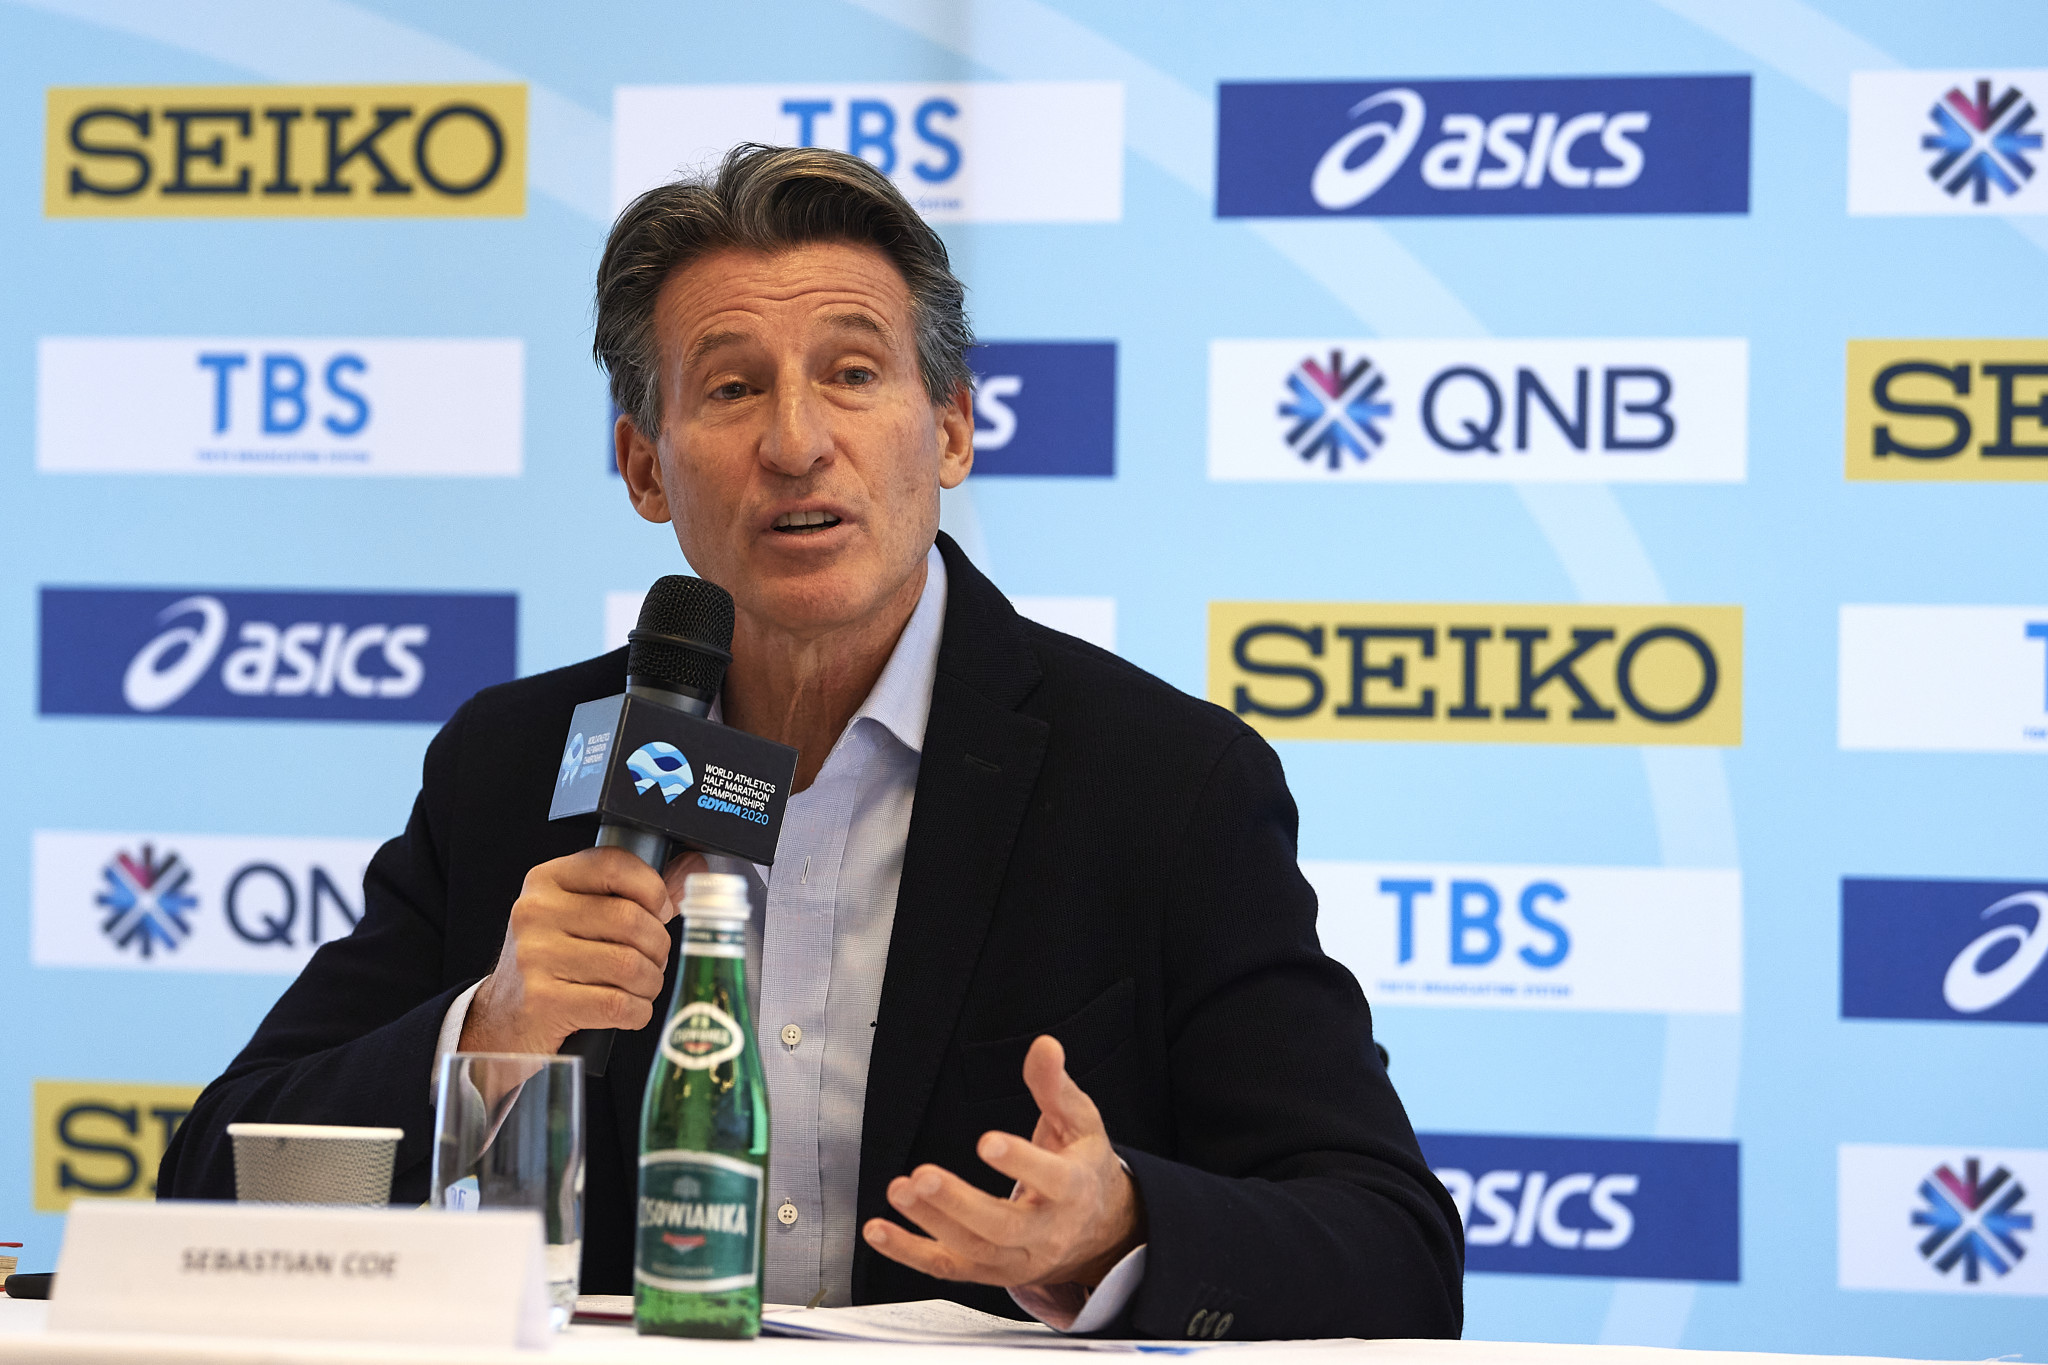 """Sebastian Coe claimed track and field athletes who are doping have a """"greater chance of being caught"""" at Tokyo 2020 ©Getty Images"""